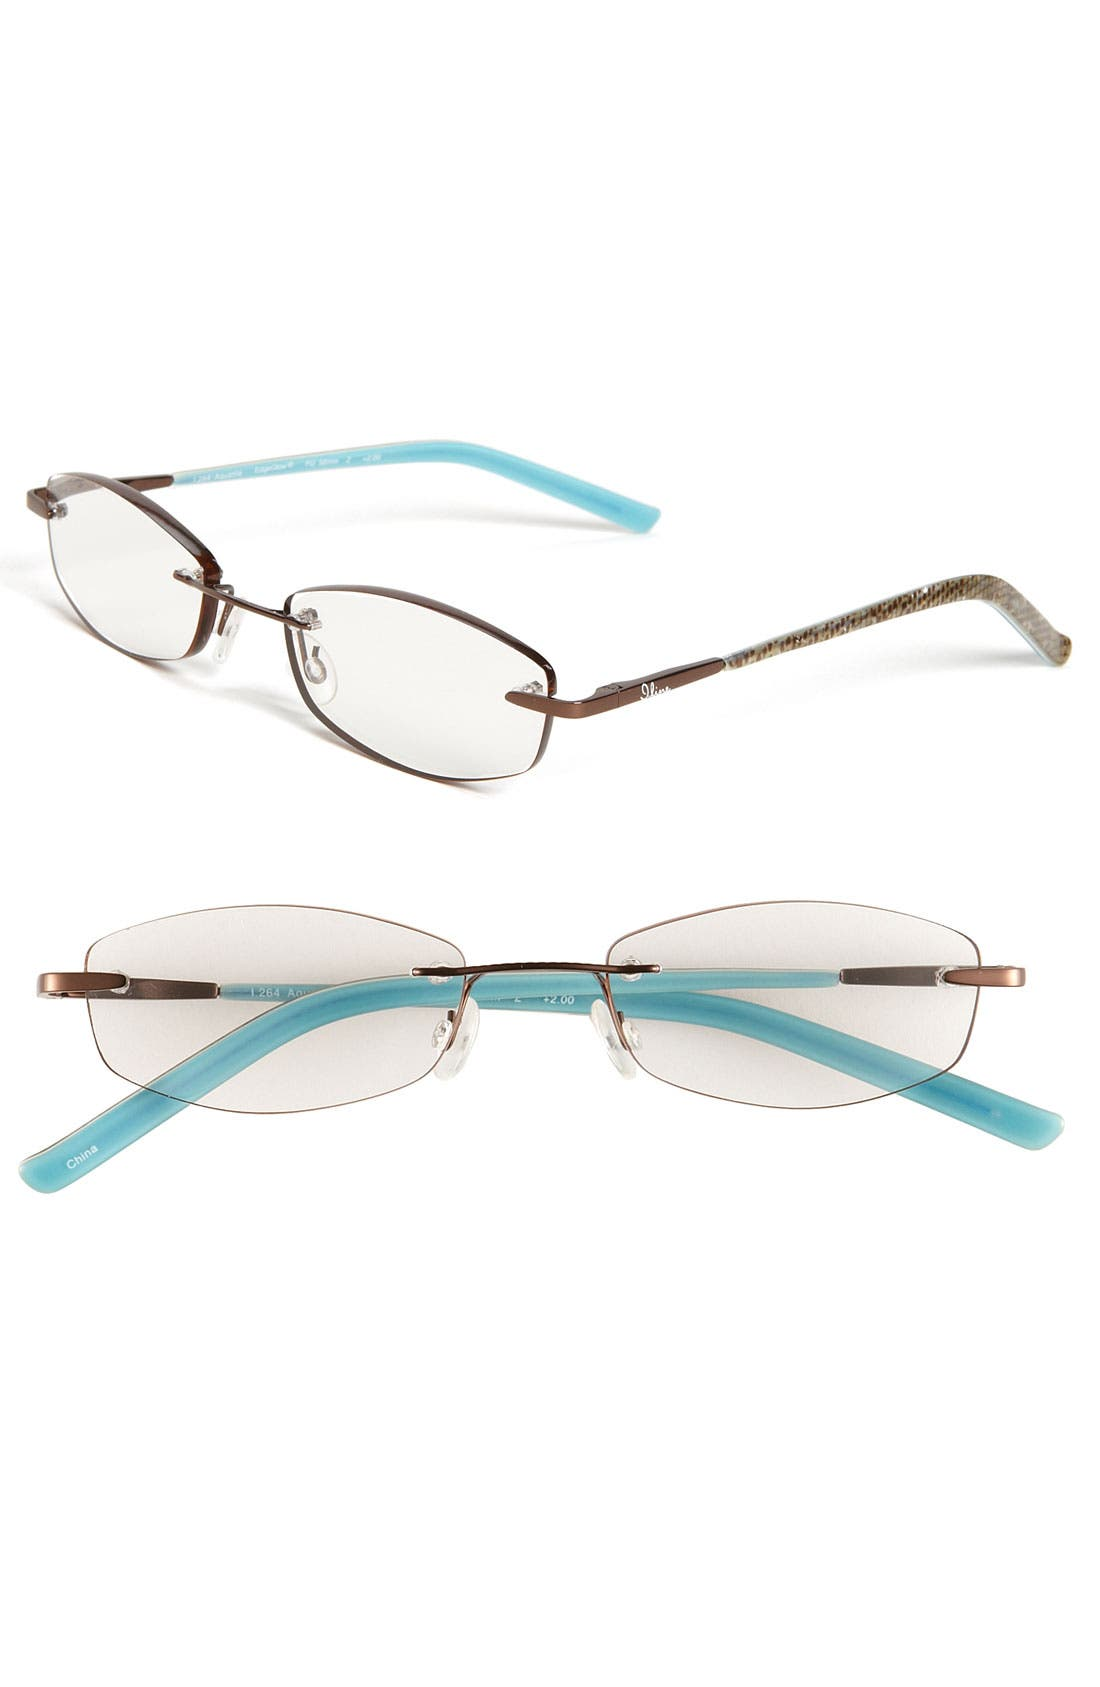 Alternate Image 1 Selected - I Line Eyewear 'Aquatile' EdgeGlow® Reading Glasses